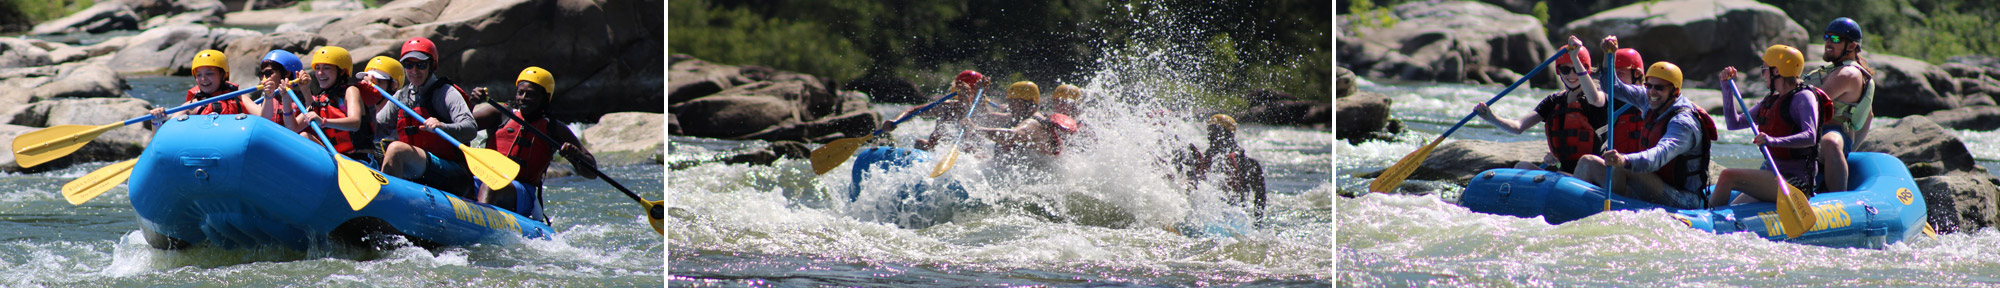 whitewater rafting in Harpers Ferry, WV